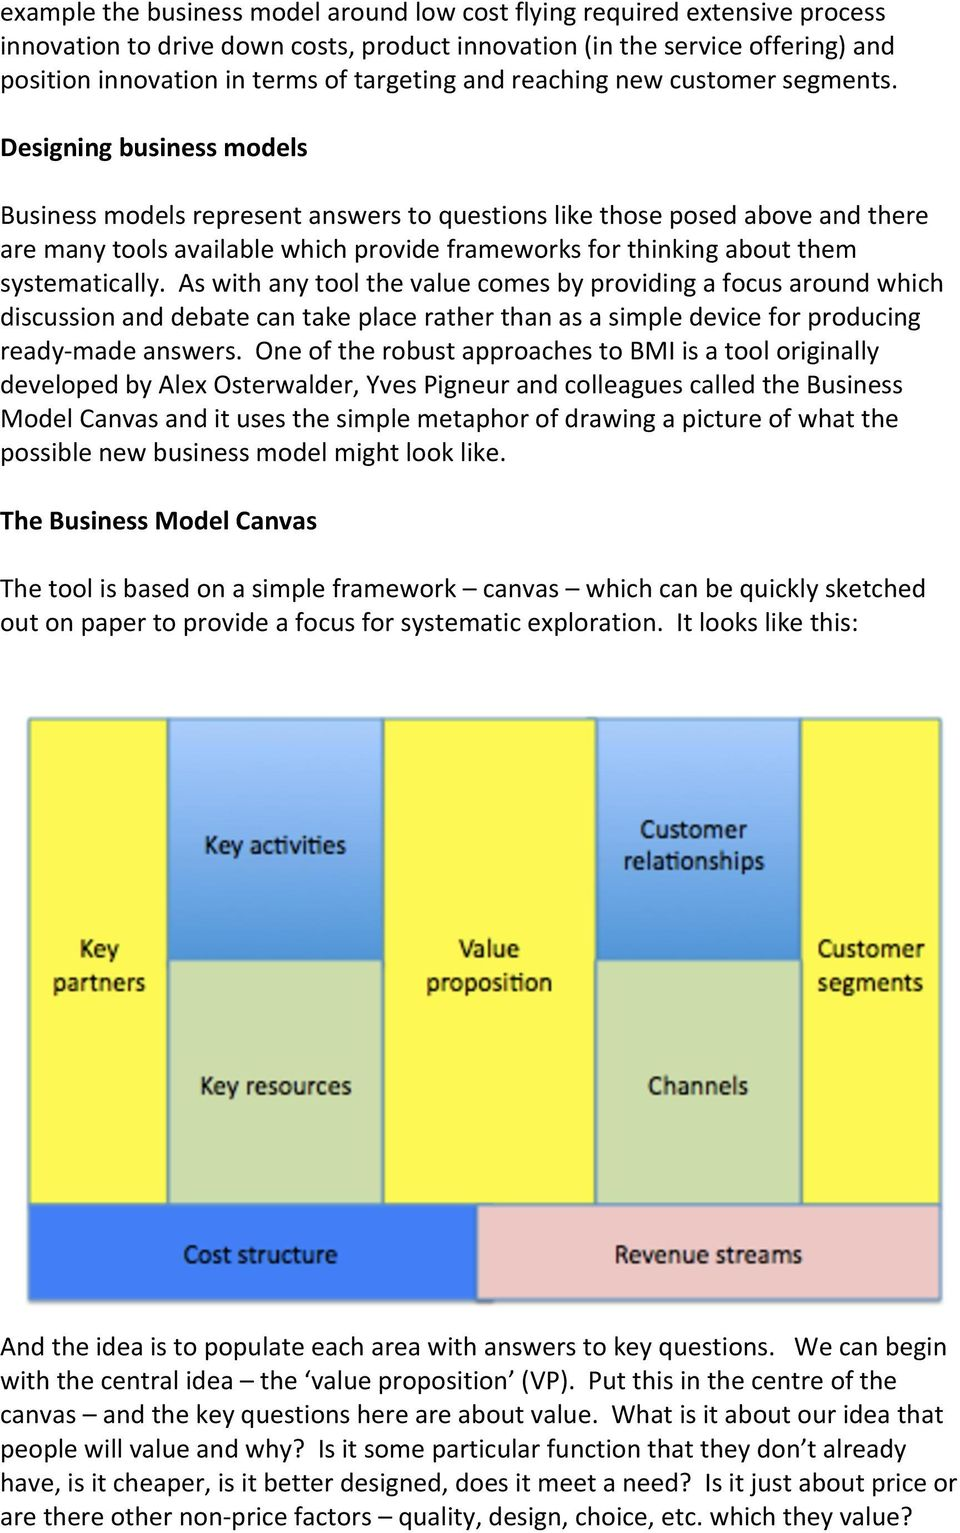 Designing business models Business models represent answers to questions like those posed above and there are many tools available which provide frameworks for thinking about them systematically.